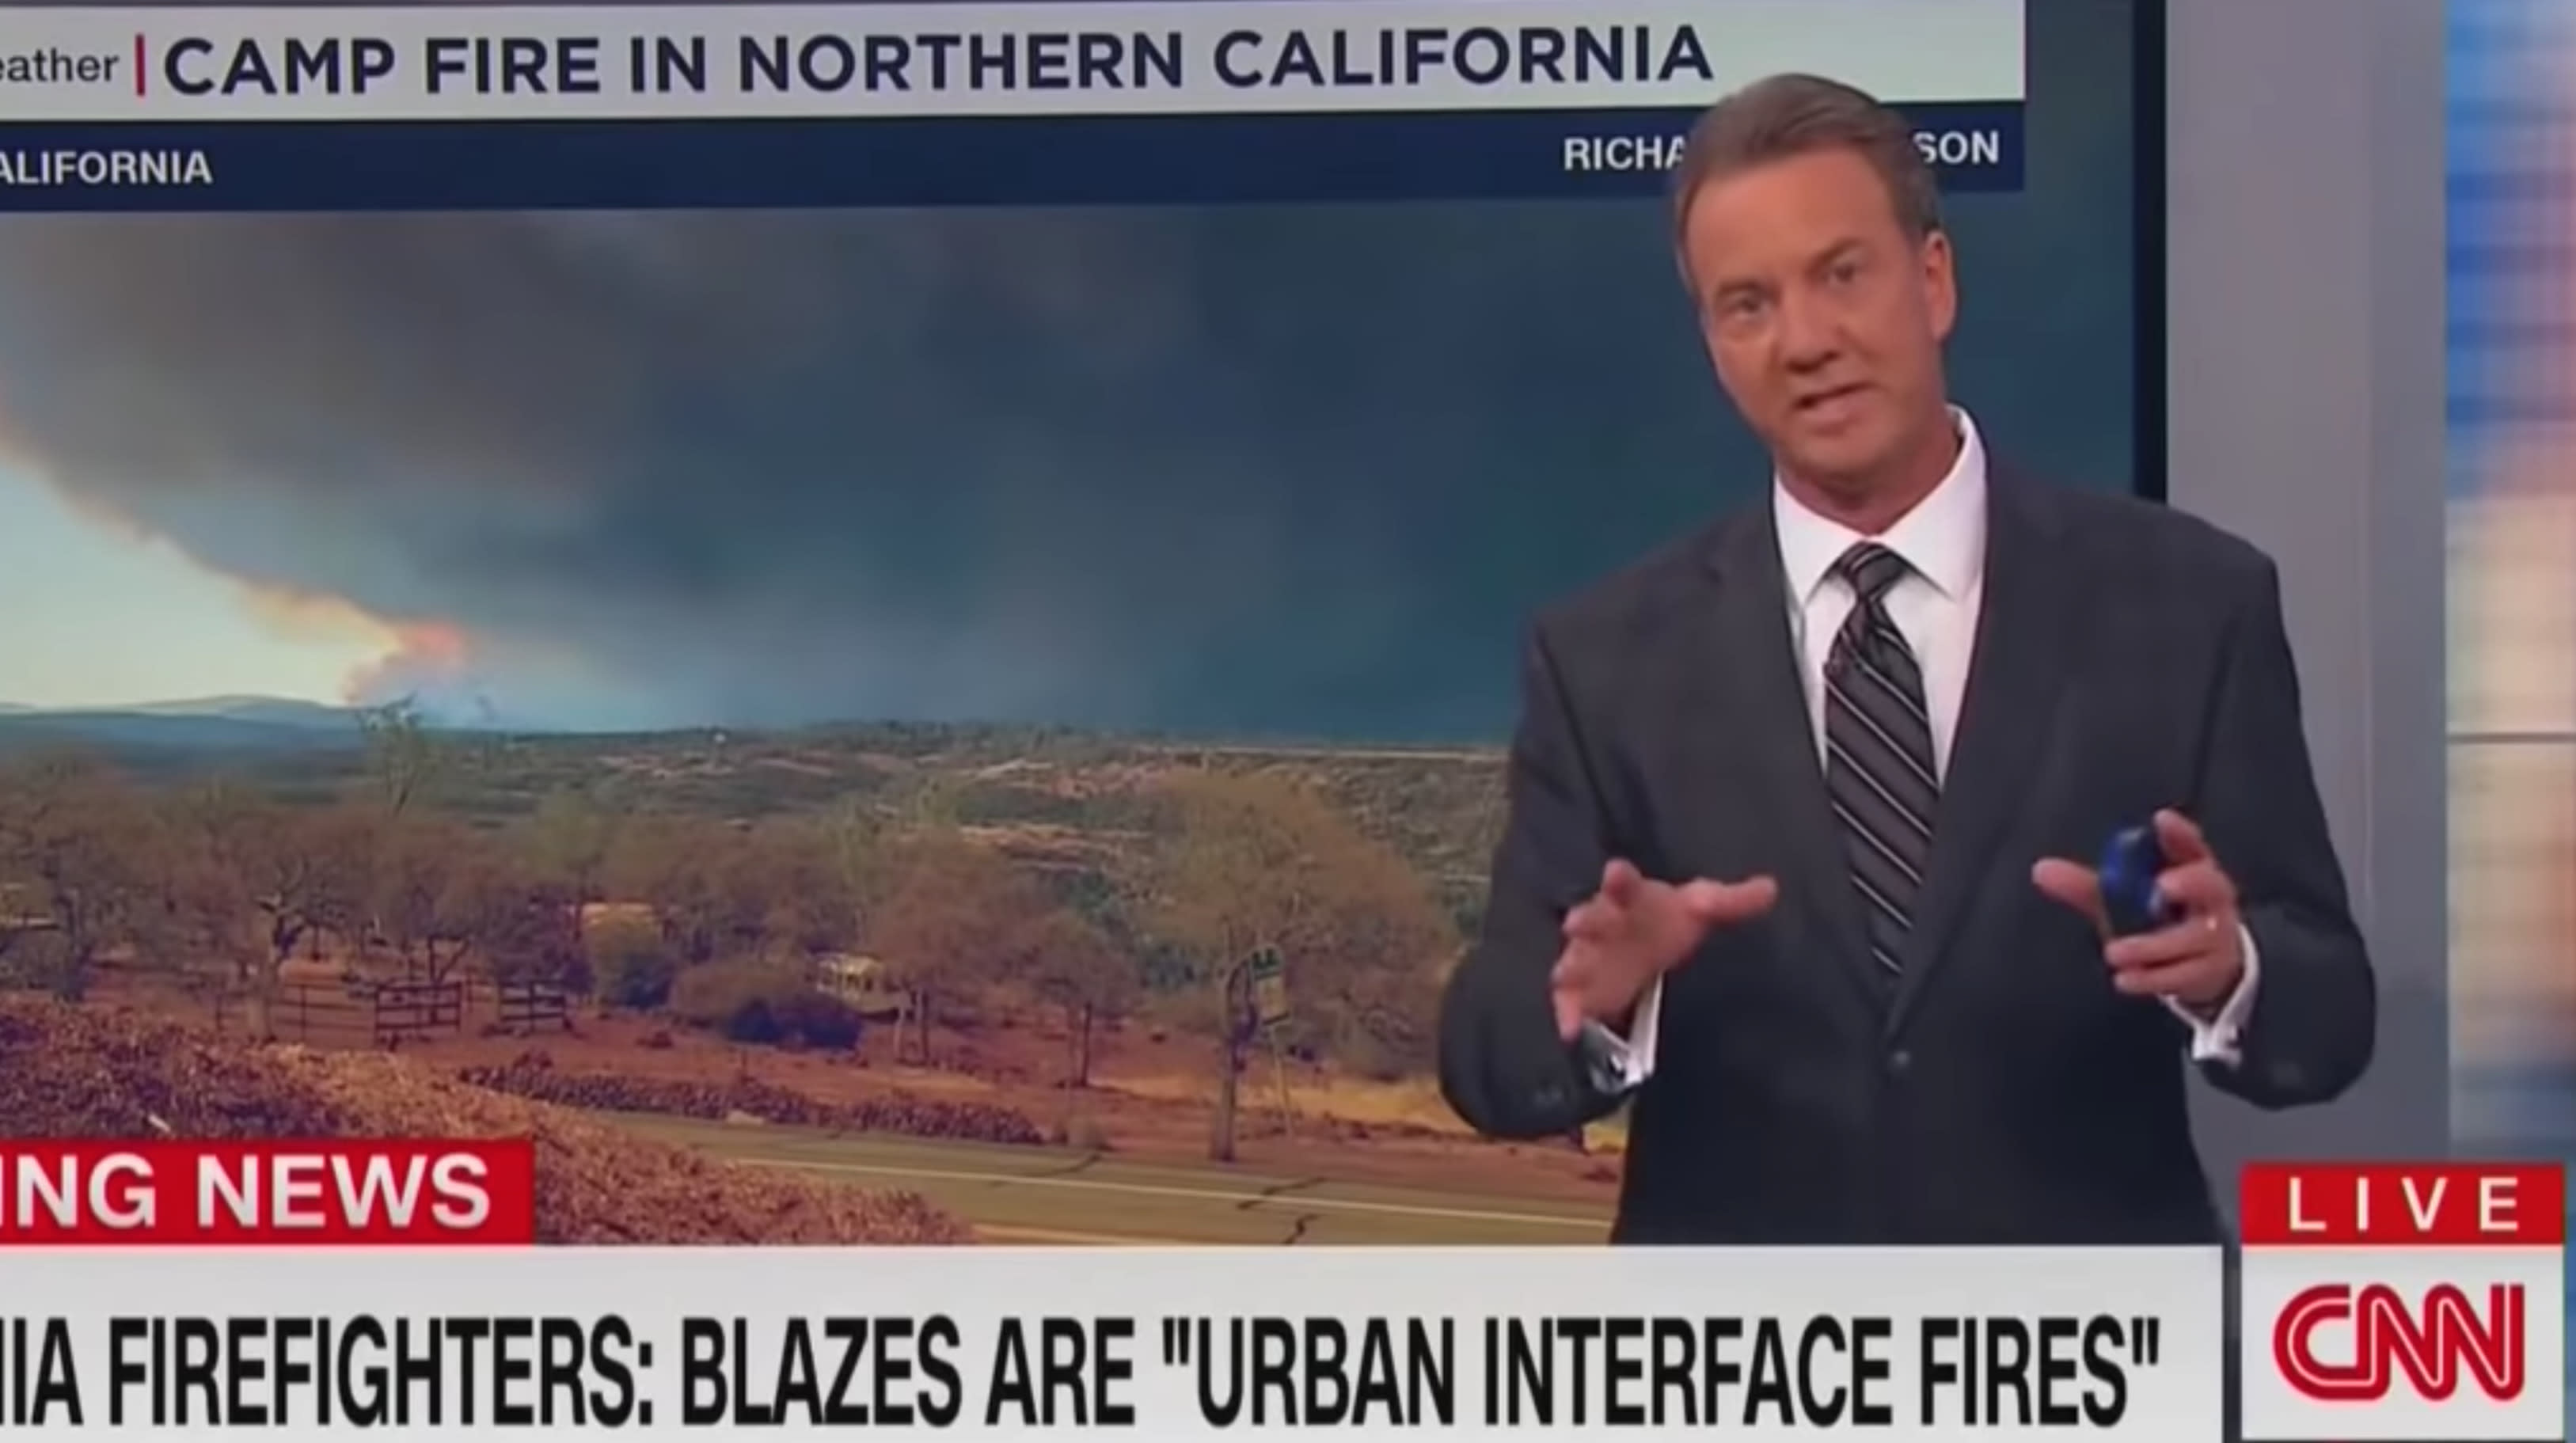 CNN Meteorologist Tom Sater Schools Trump On What Actually Caused California Wildfires